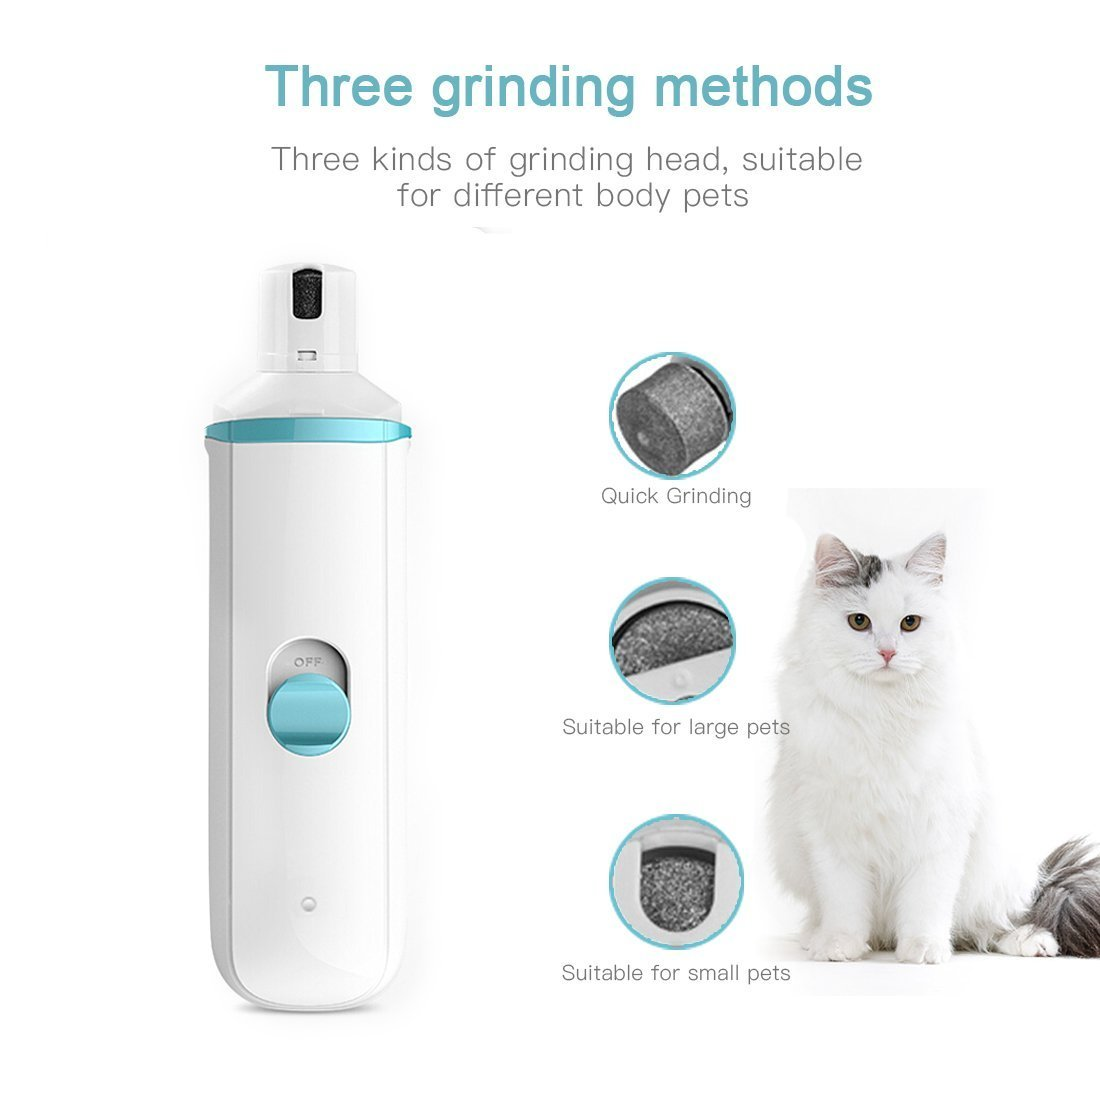 DIGDAN Dog Nail Grinder, Electric Pet Nail Grinder with USB Fast Charging for Gentle Painless Paws Grooming, Portable Low Noise Nail Clippers for Dogs, Cats and Other Animal Paws by DIGDAN (Image #3)